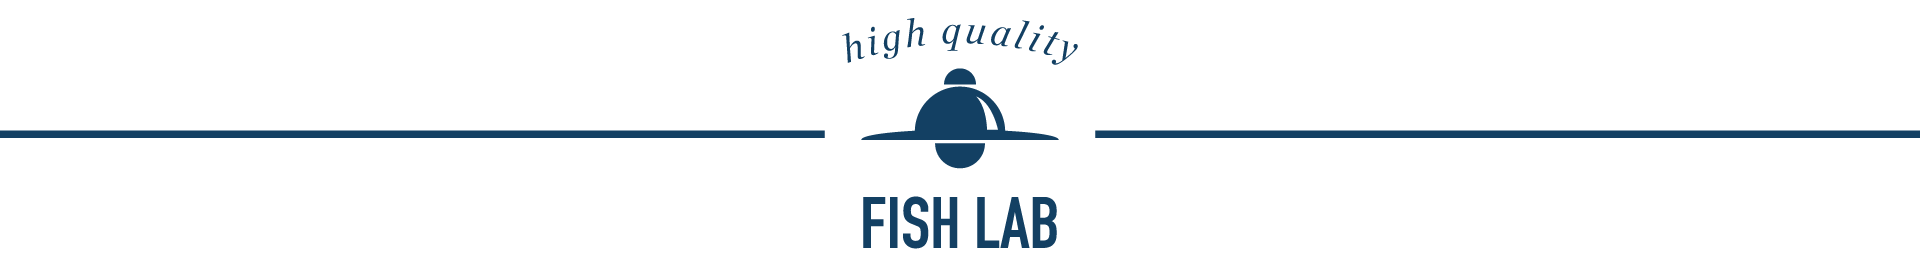 High quality Fish Lab